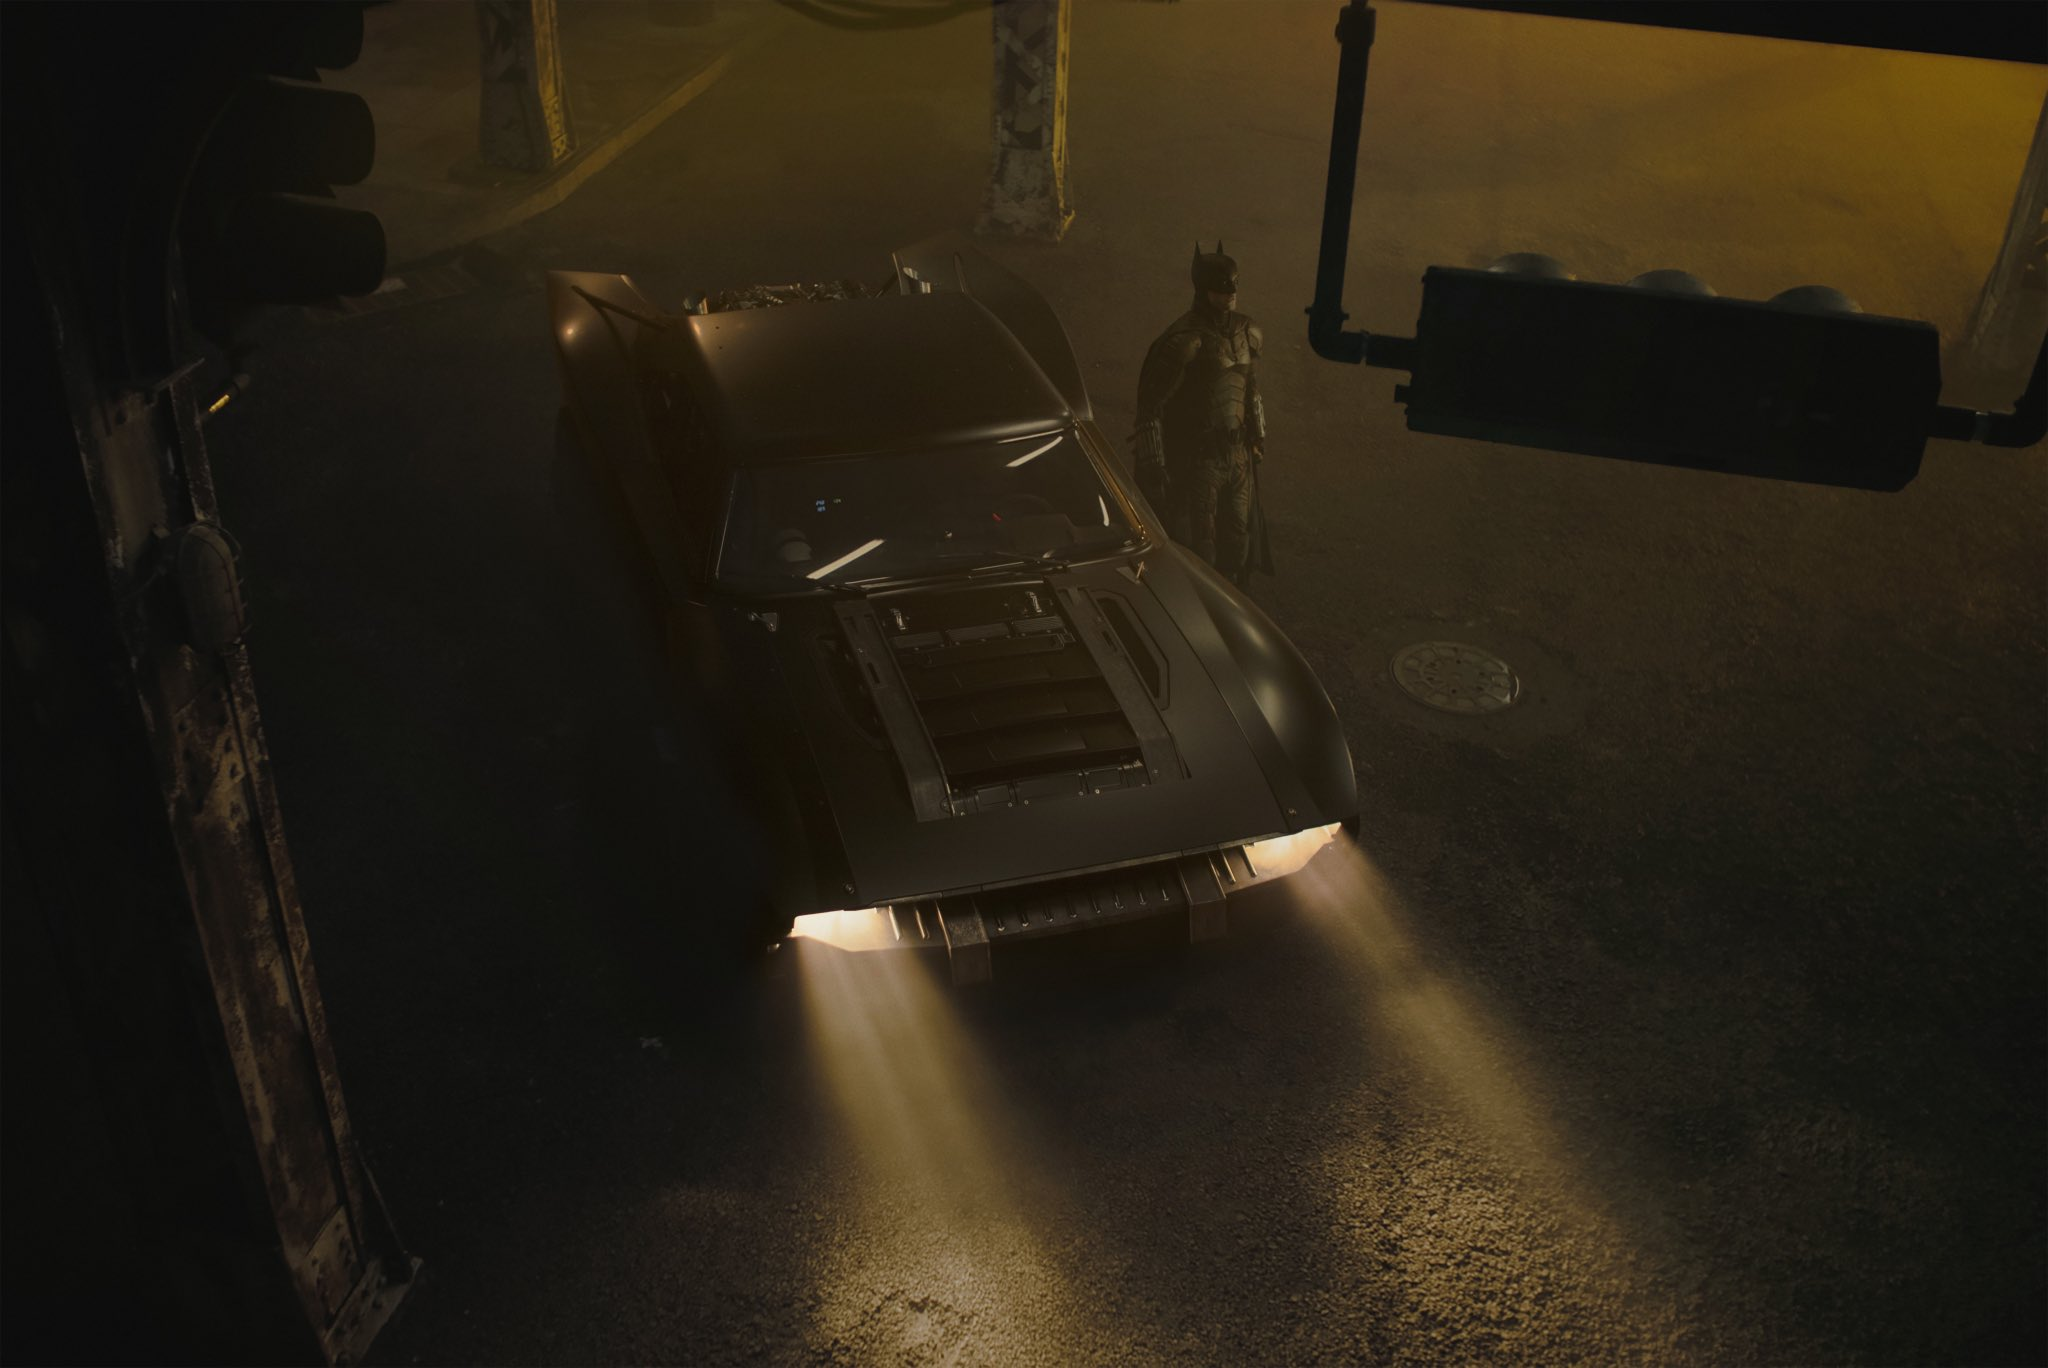 New images of the Batmobile have been released by Matt Reeves on Twitter